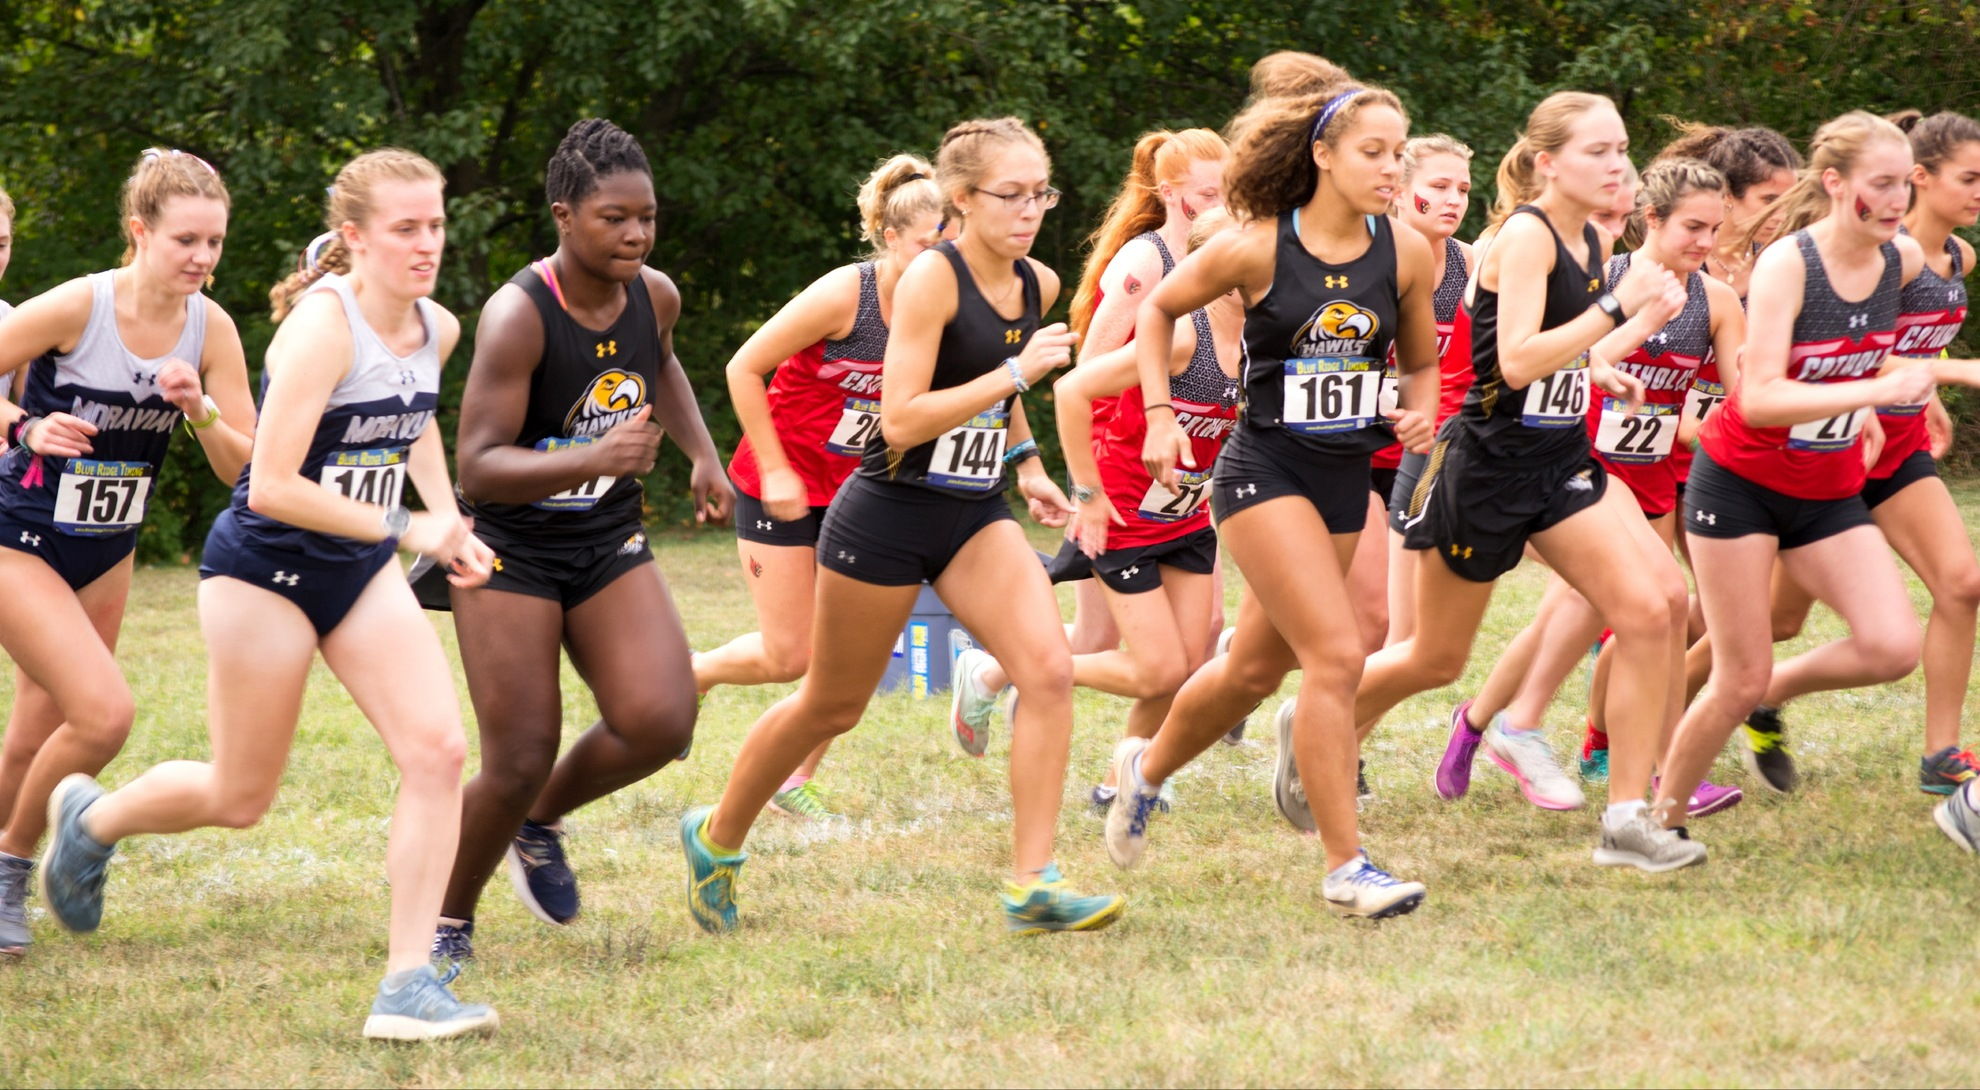 Four Run for Women's Cross Country Team at Cardinal Classic